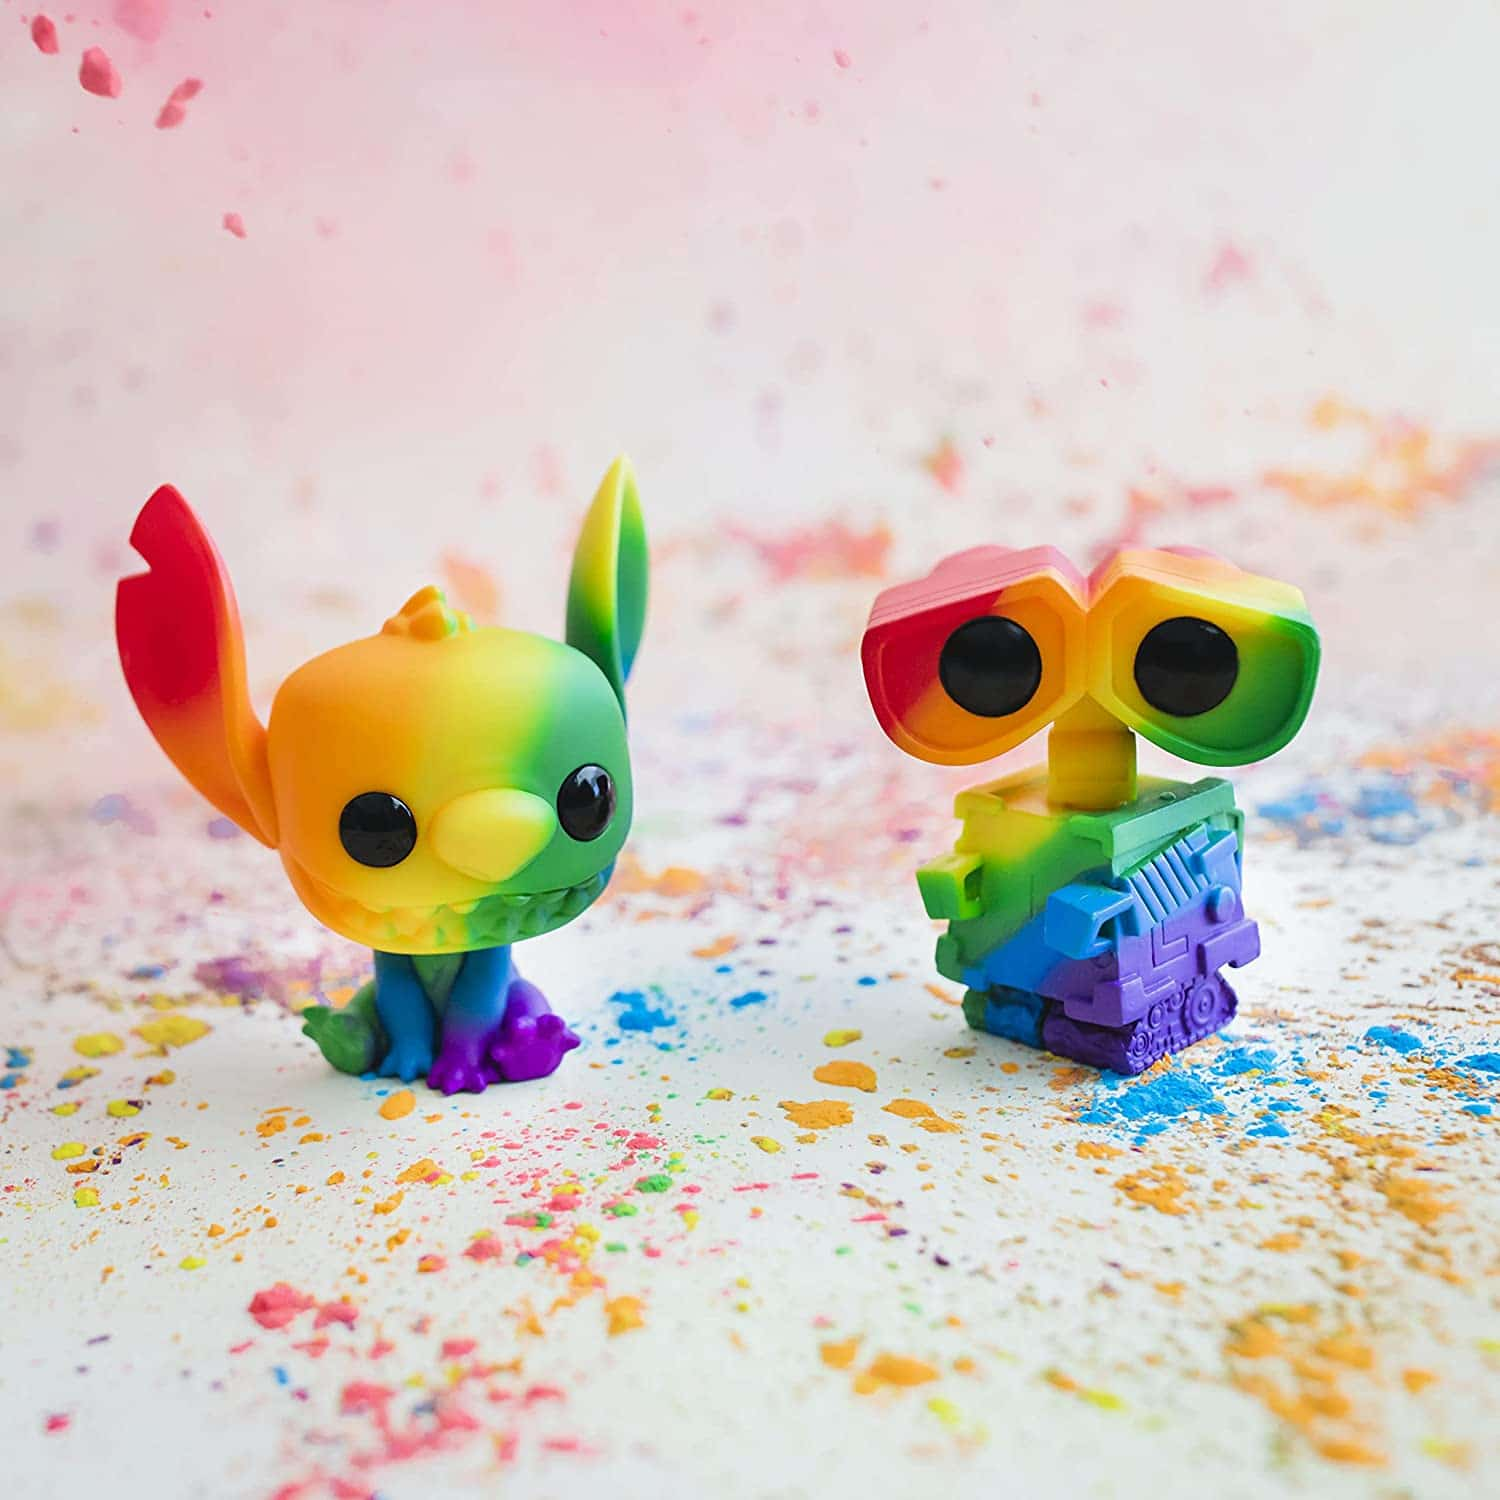 Funko's 2021 Pride Pop! collection includes Deadpool, Mickey Mouse, and Stitch 19